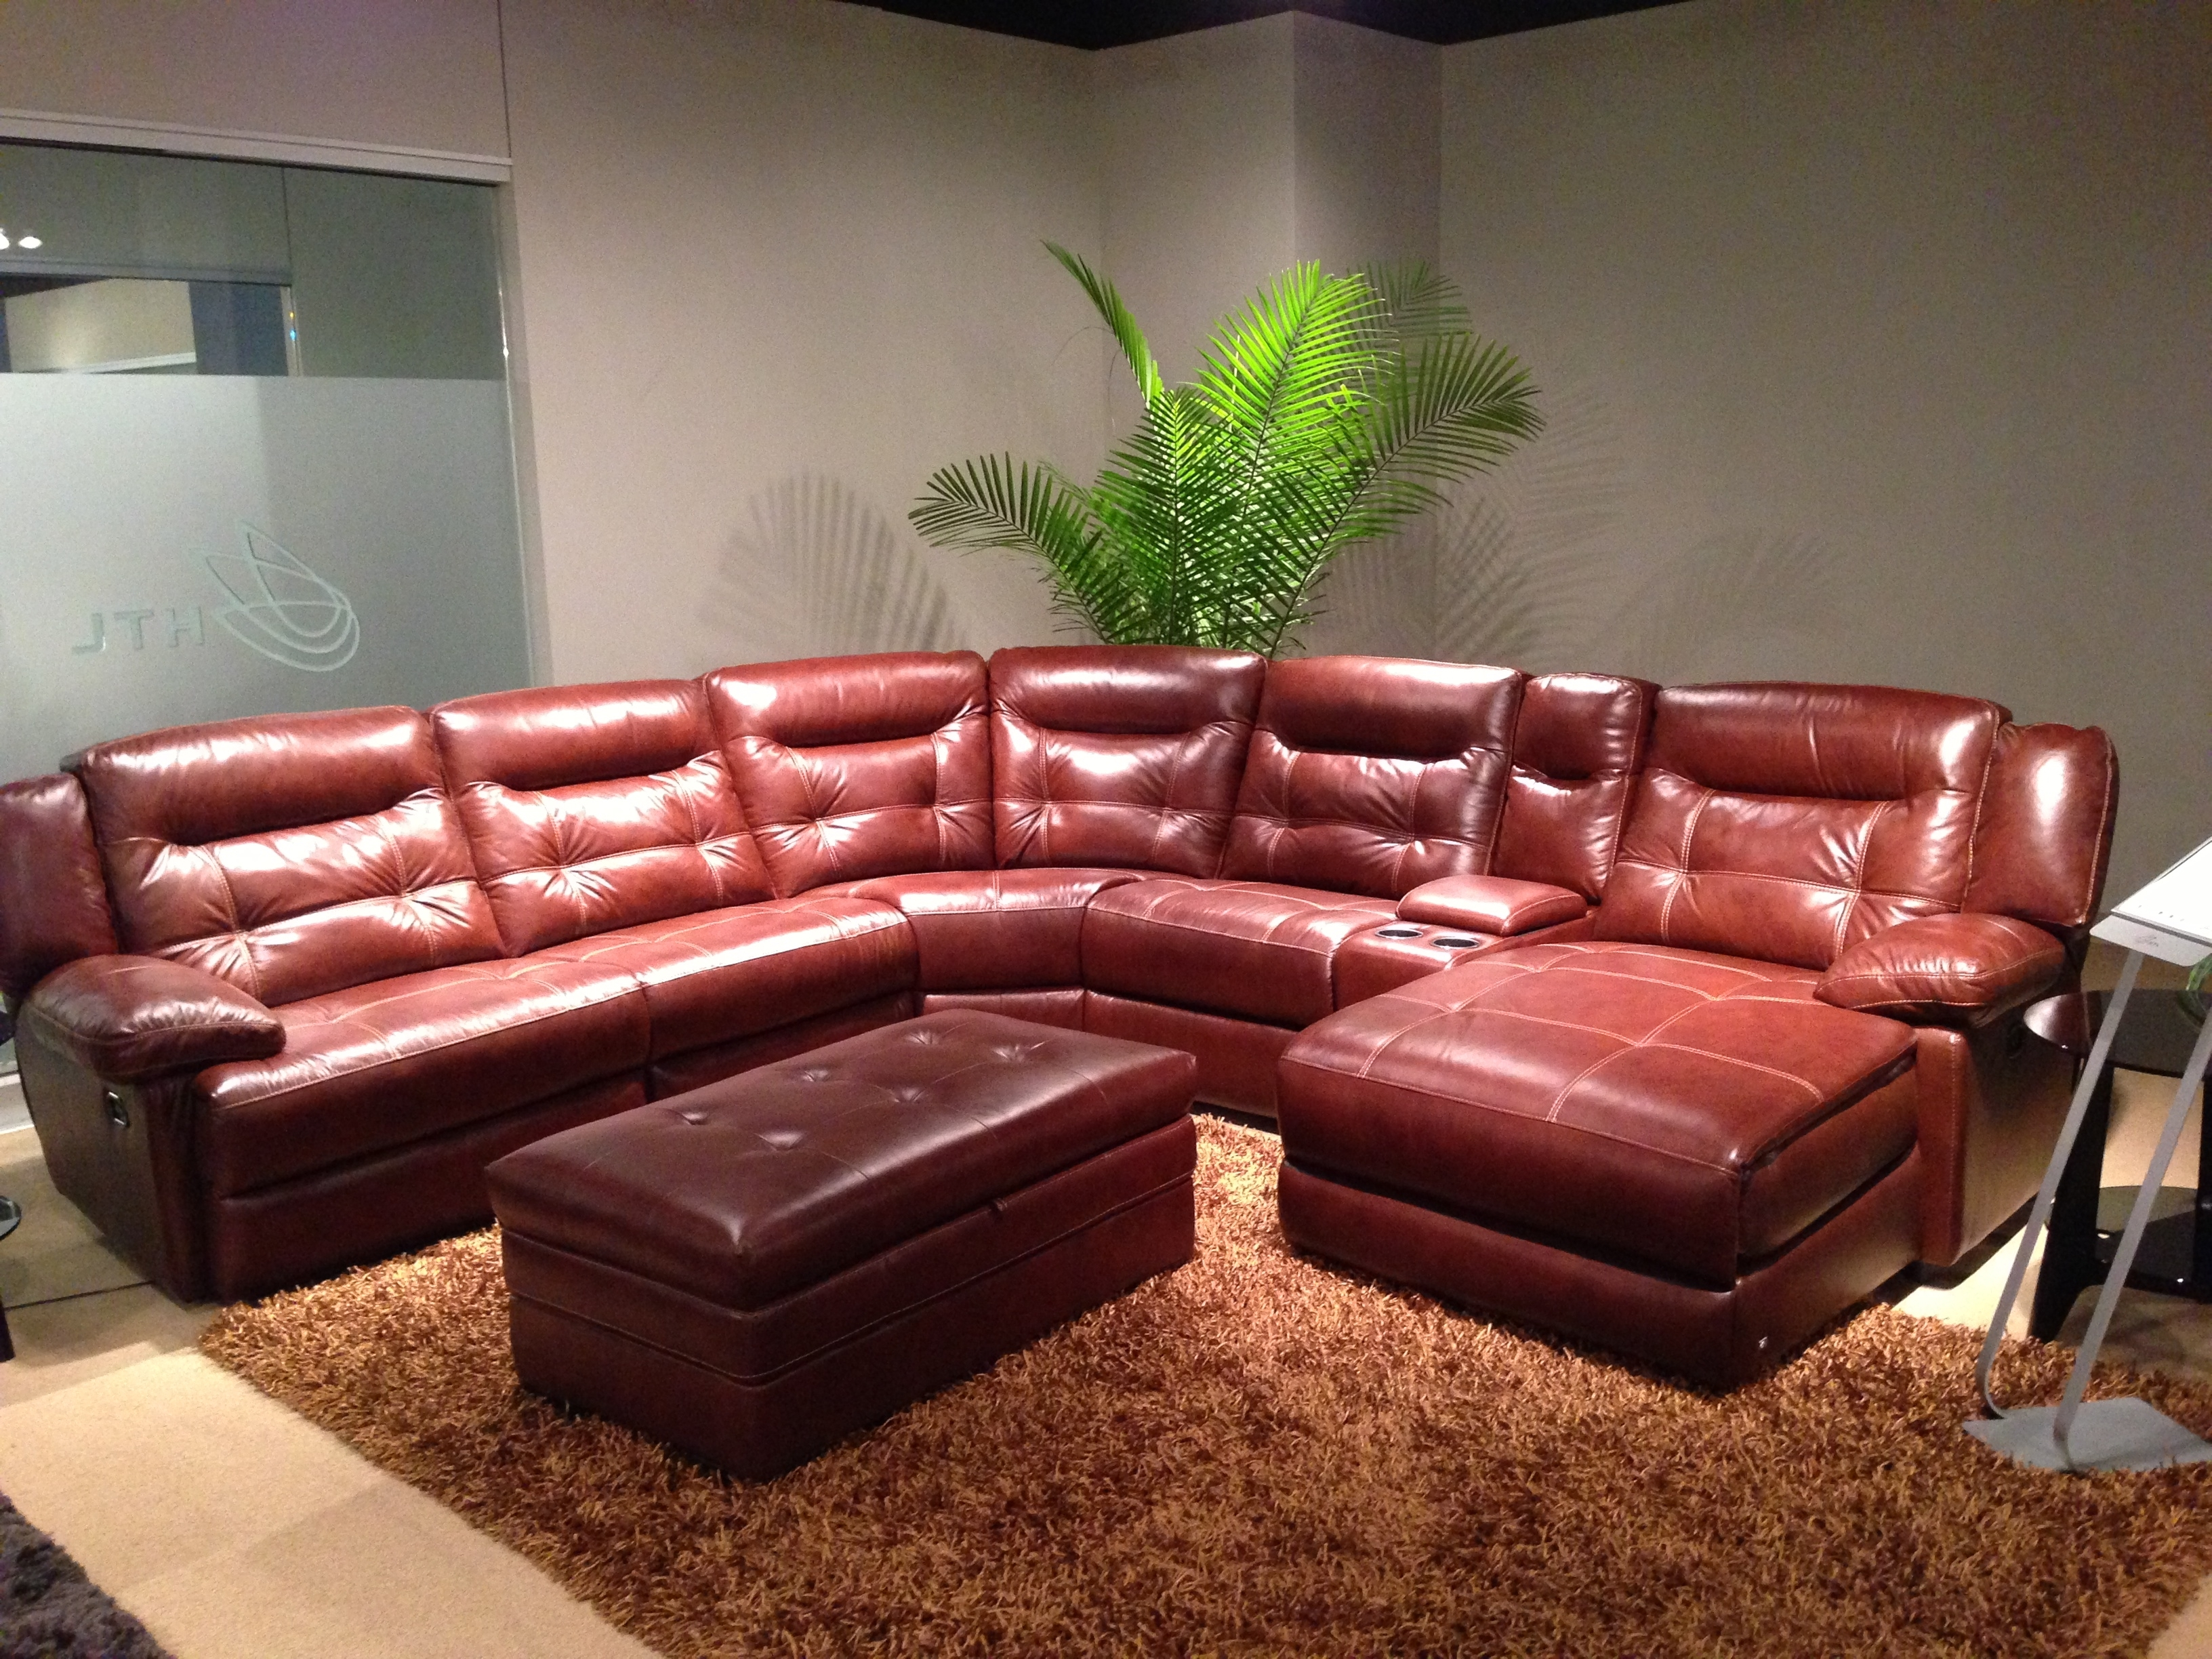 Durango Leather Sectional | | Creative Leather Furniture | Home In Red Leather Sectionals With Ottoman (Image 5 of 10)